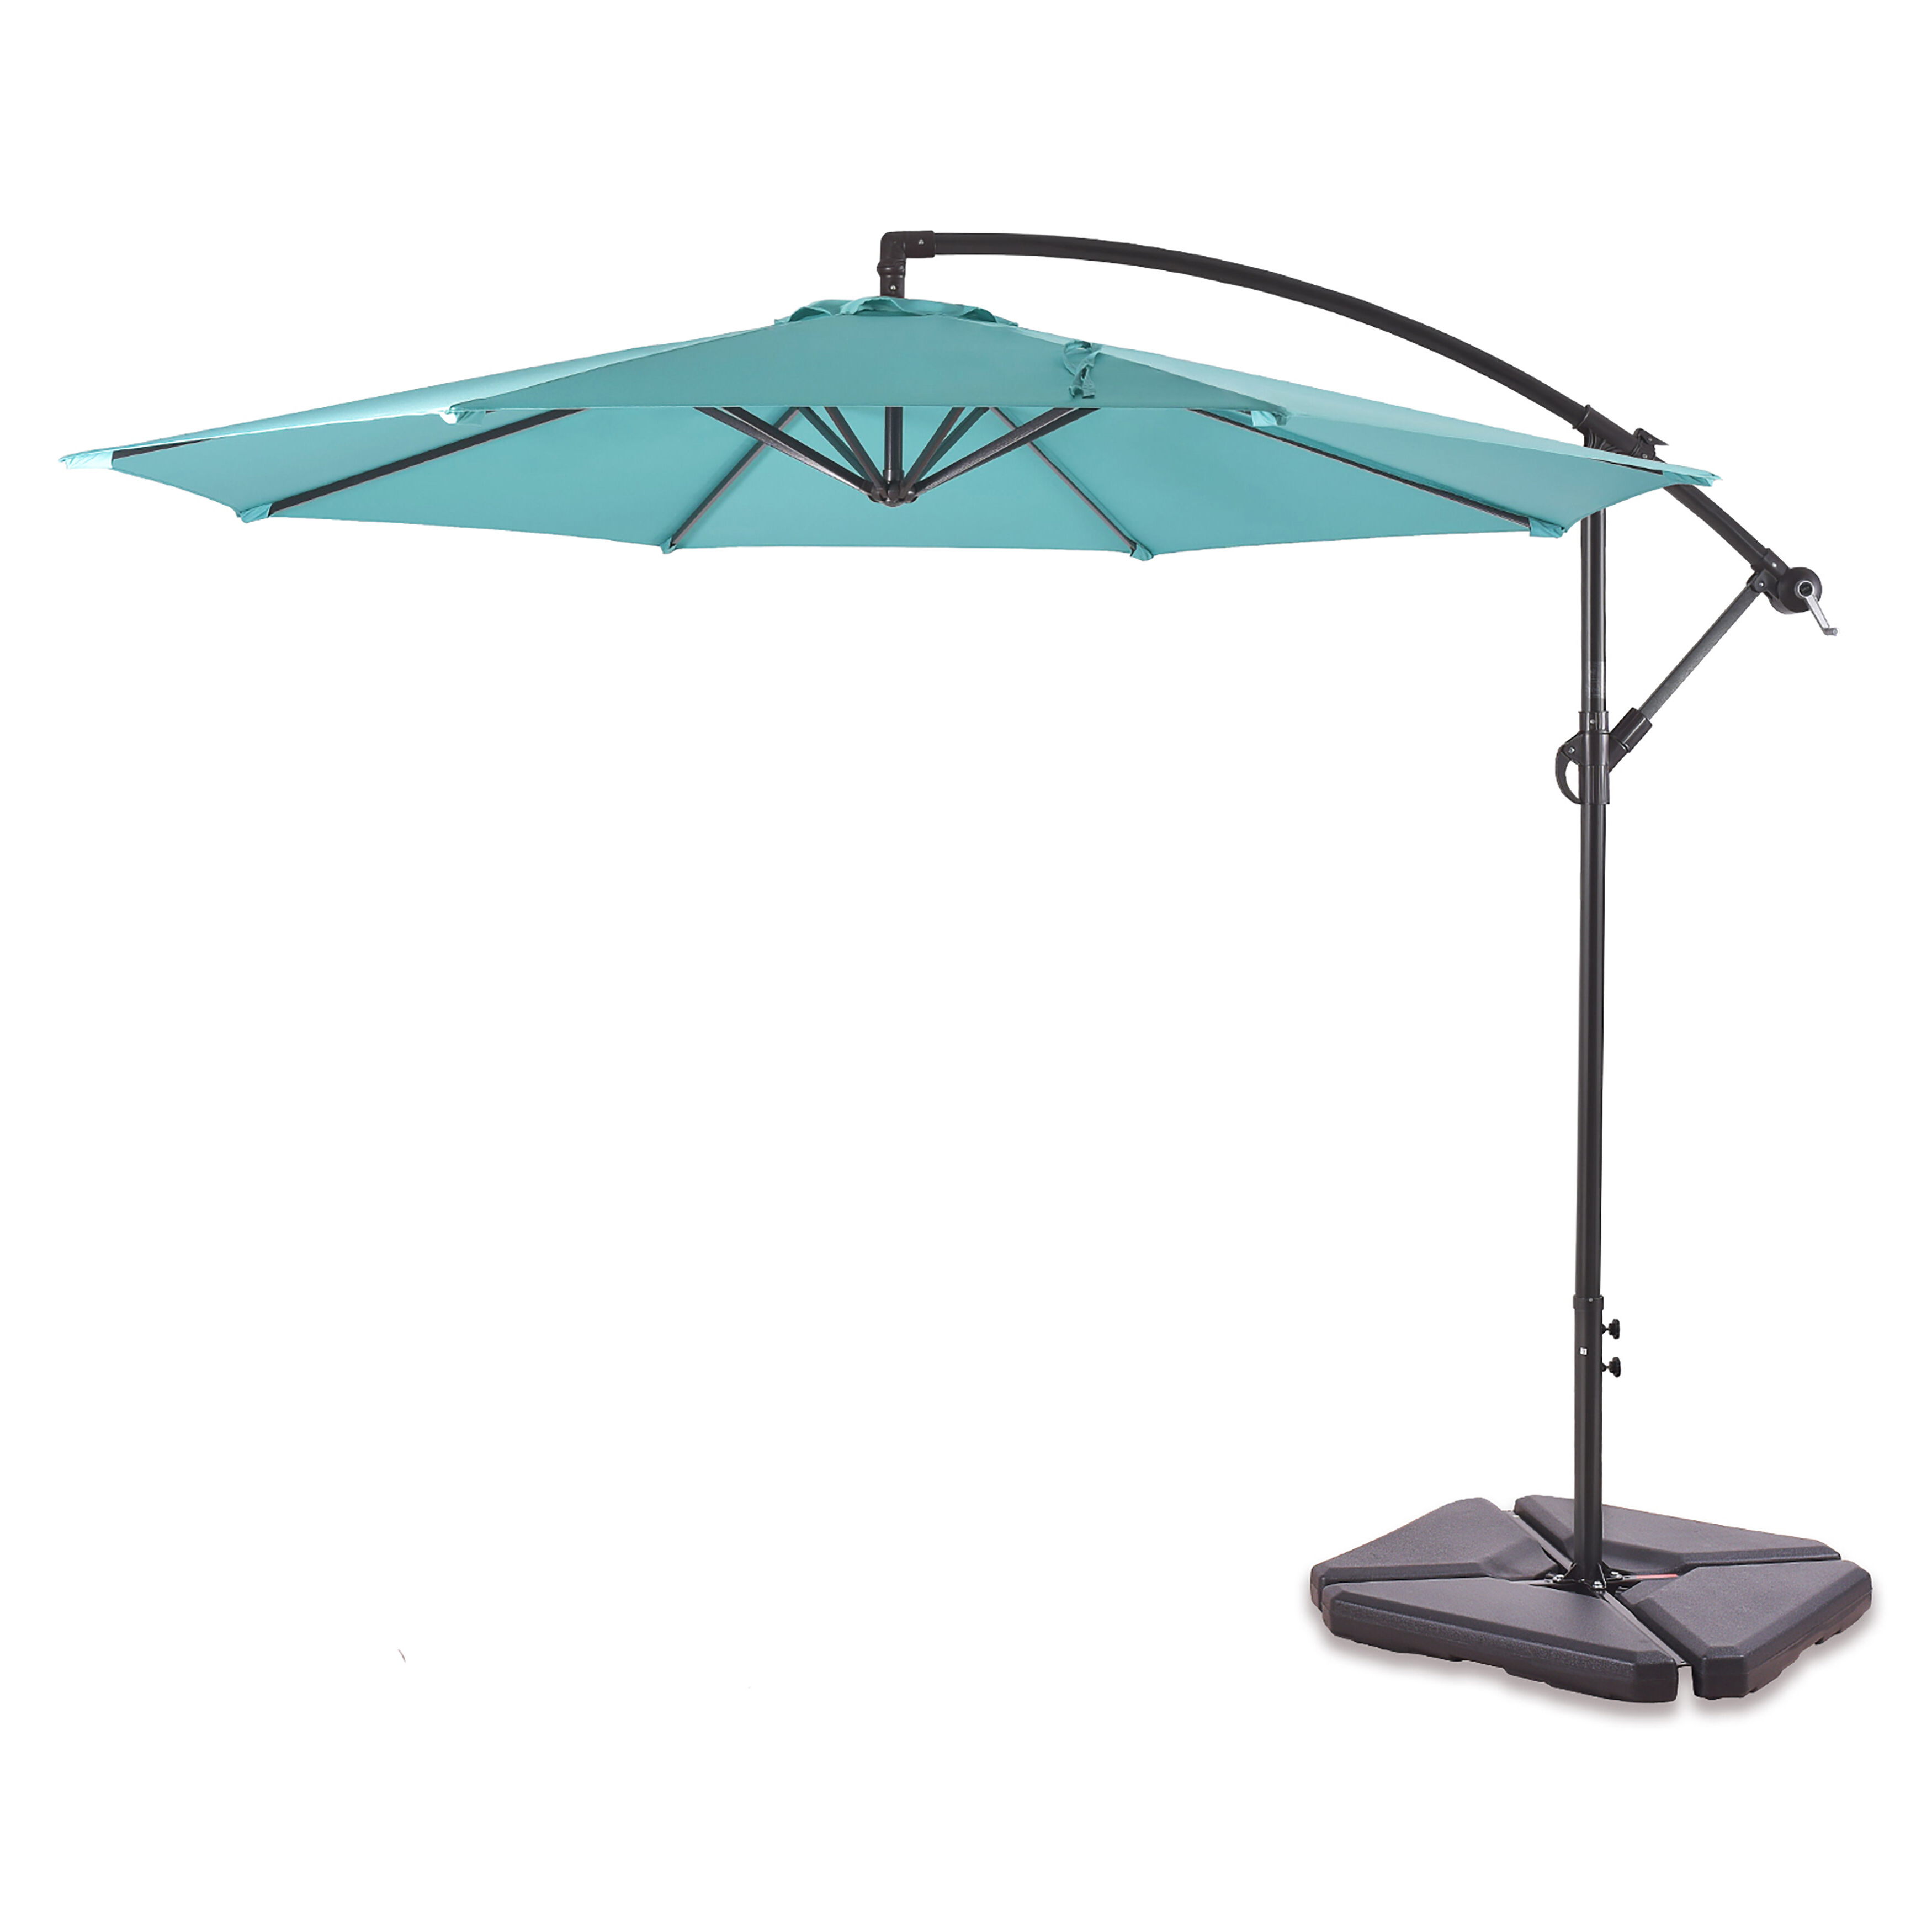 Fashionable Trotman Cantilever Umbrellas Within Karr 10' Cantilever Umbrella (View 7 of 20)